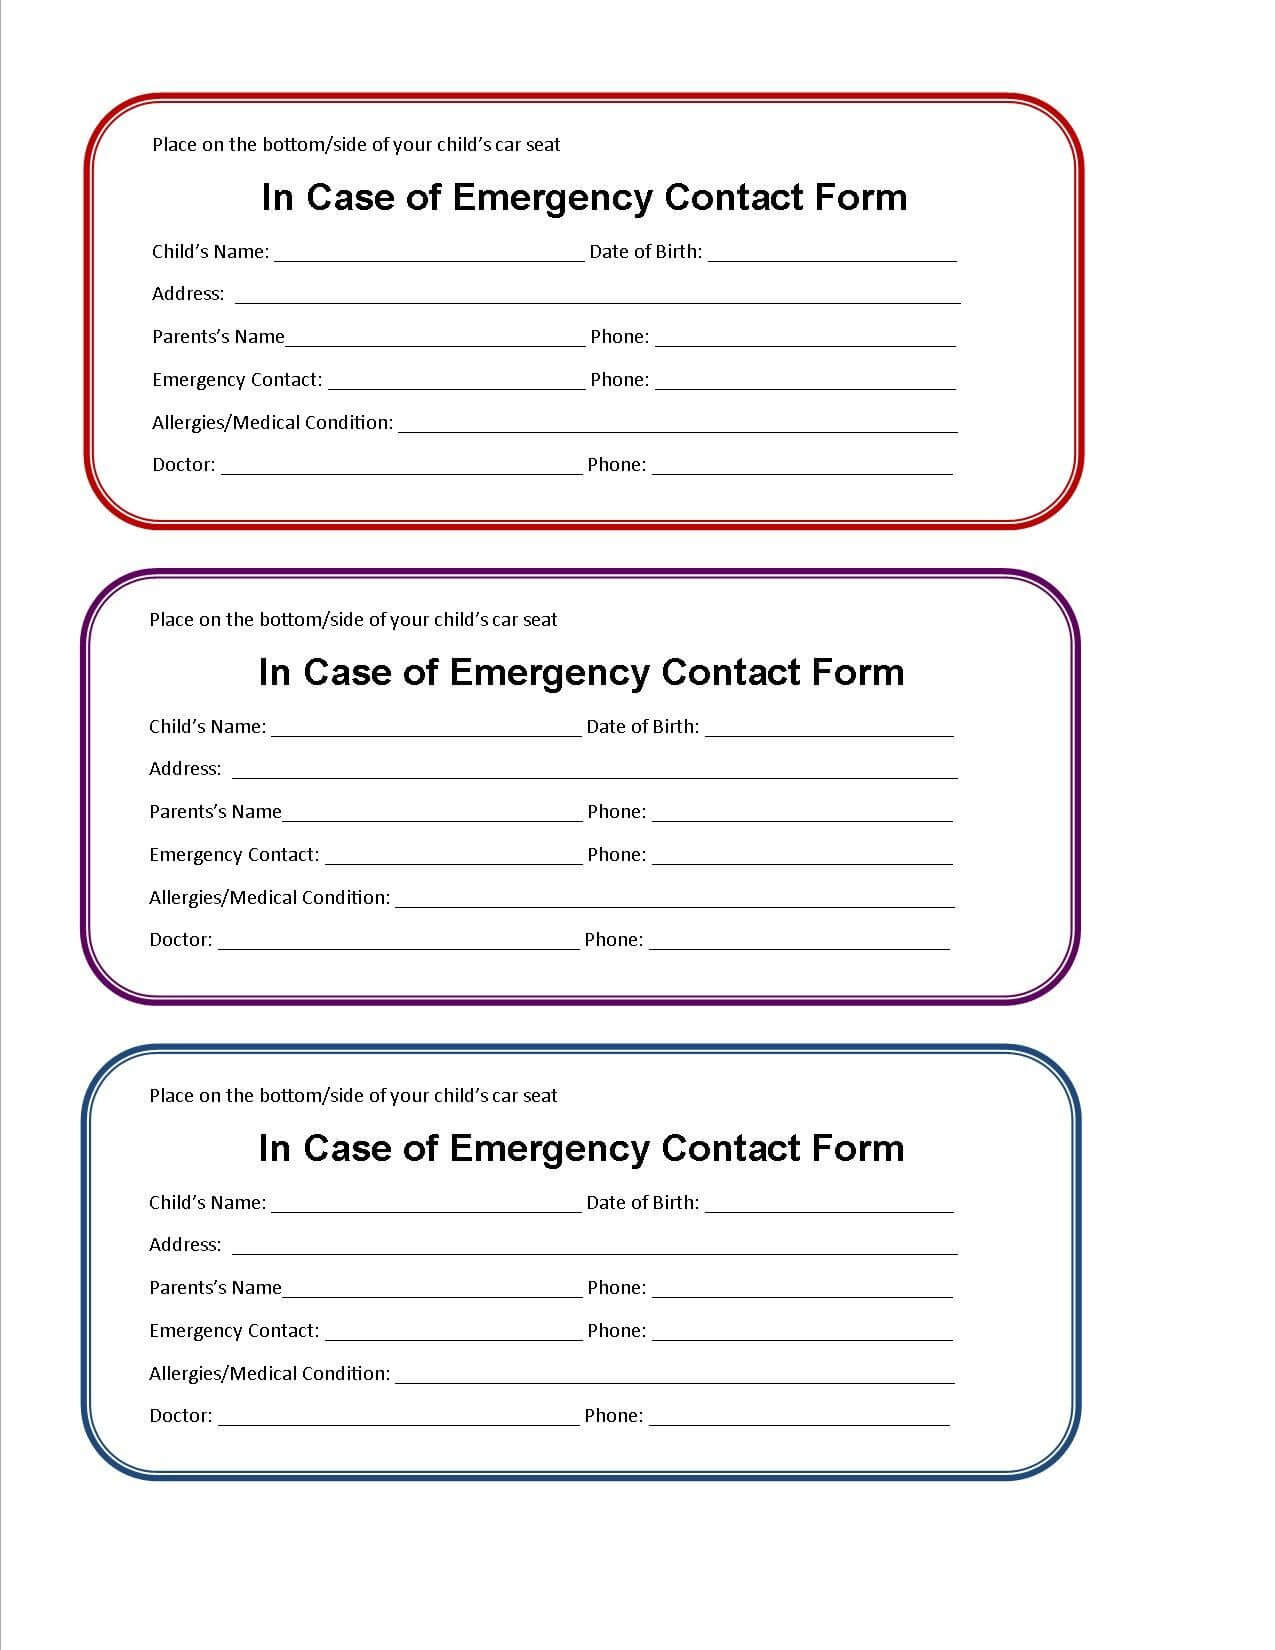 Printable Emergency Contact Form For Car Seat | Emergency Inside Emergency Contact Card Template